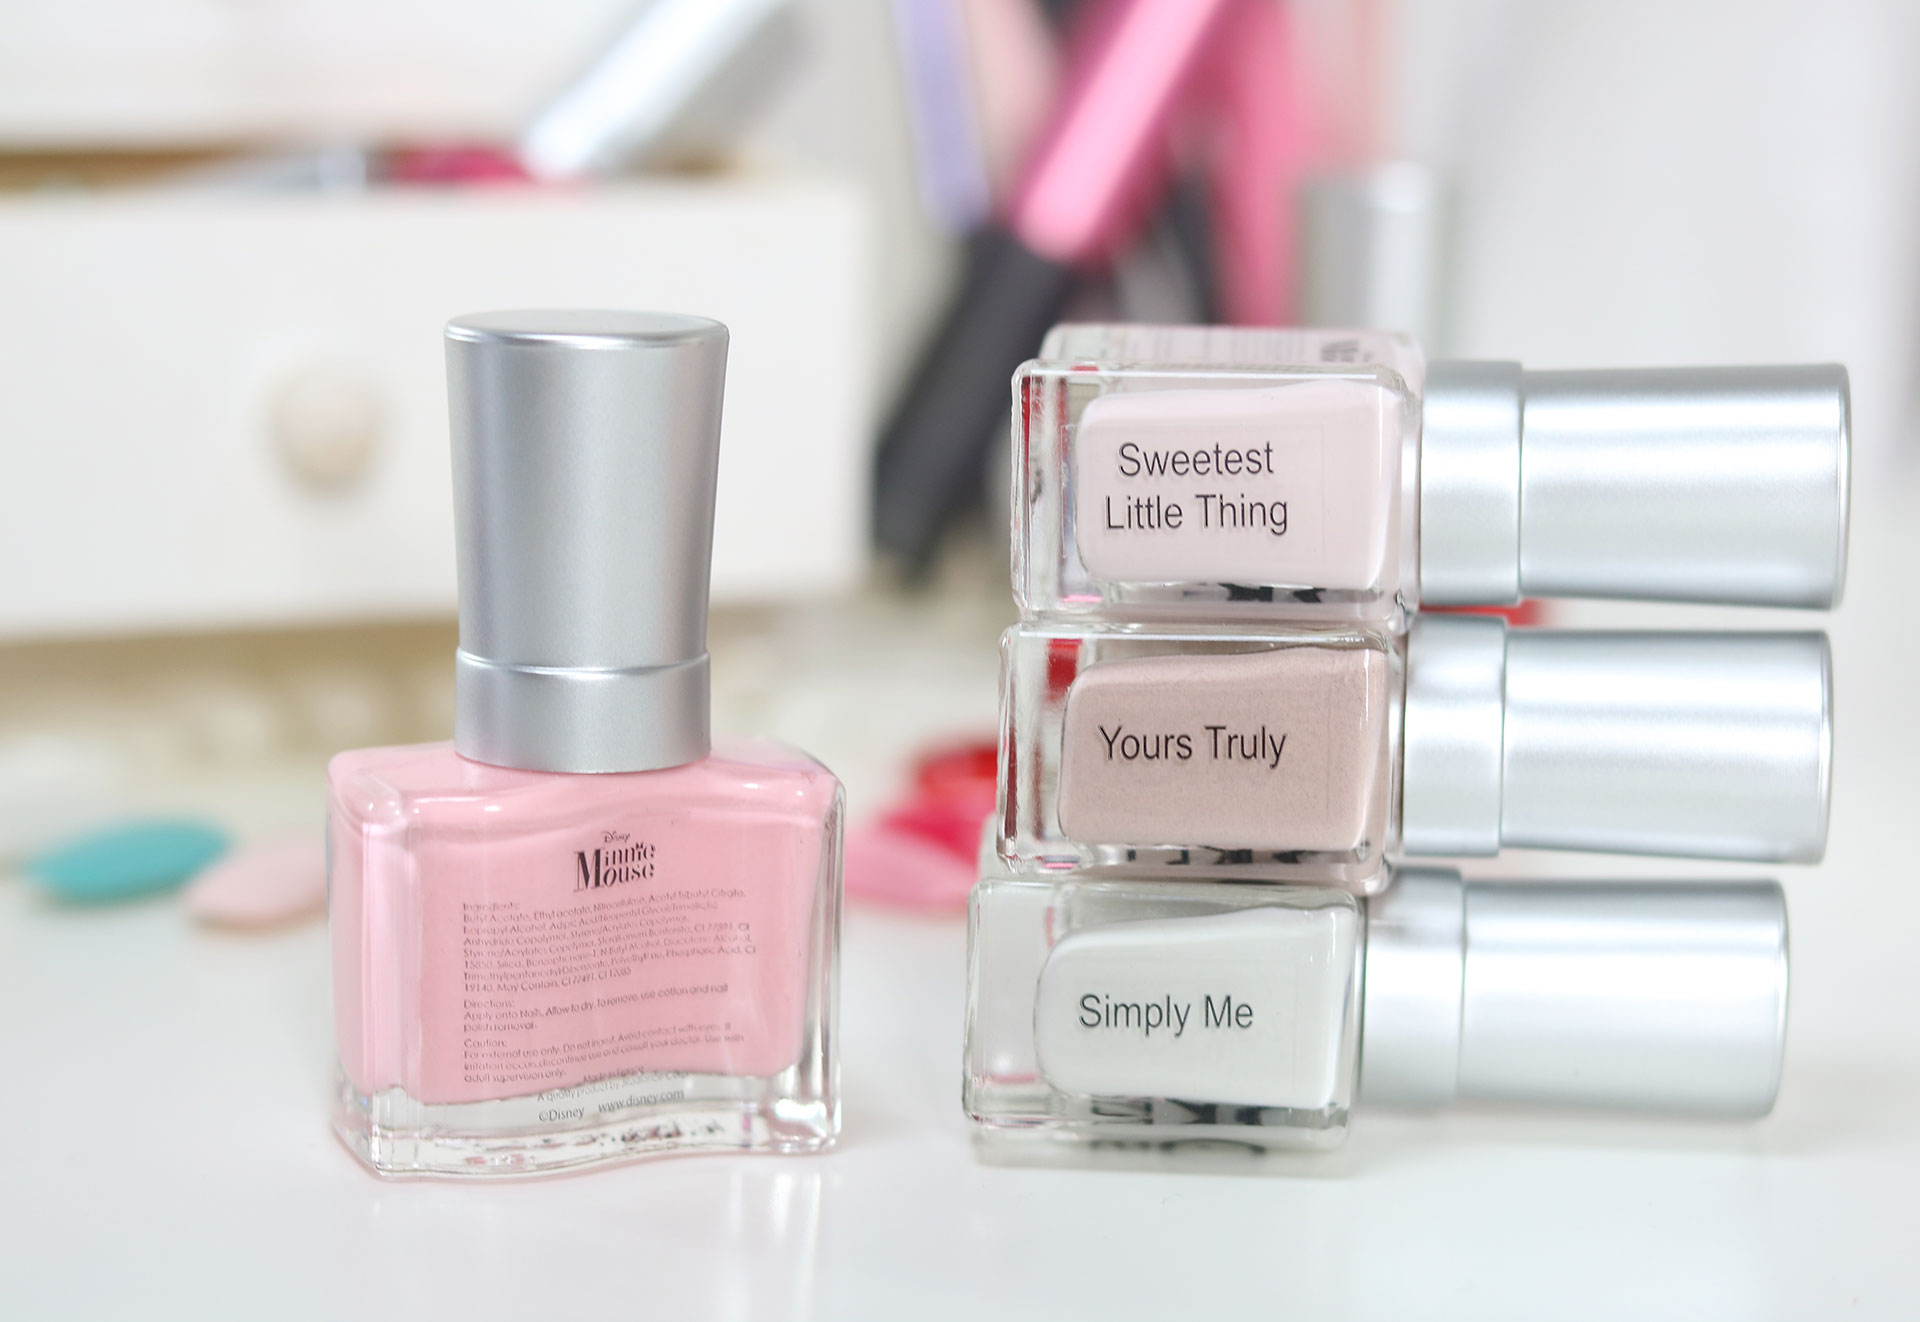 5 Girlstuff Minnie Mouse Nail Lacquers Collection Review Swatches Photos - Gen-zel She Sings Beauty